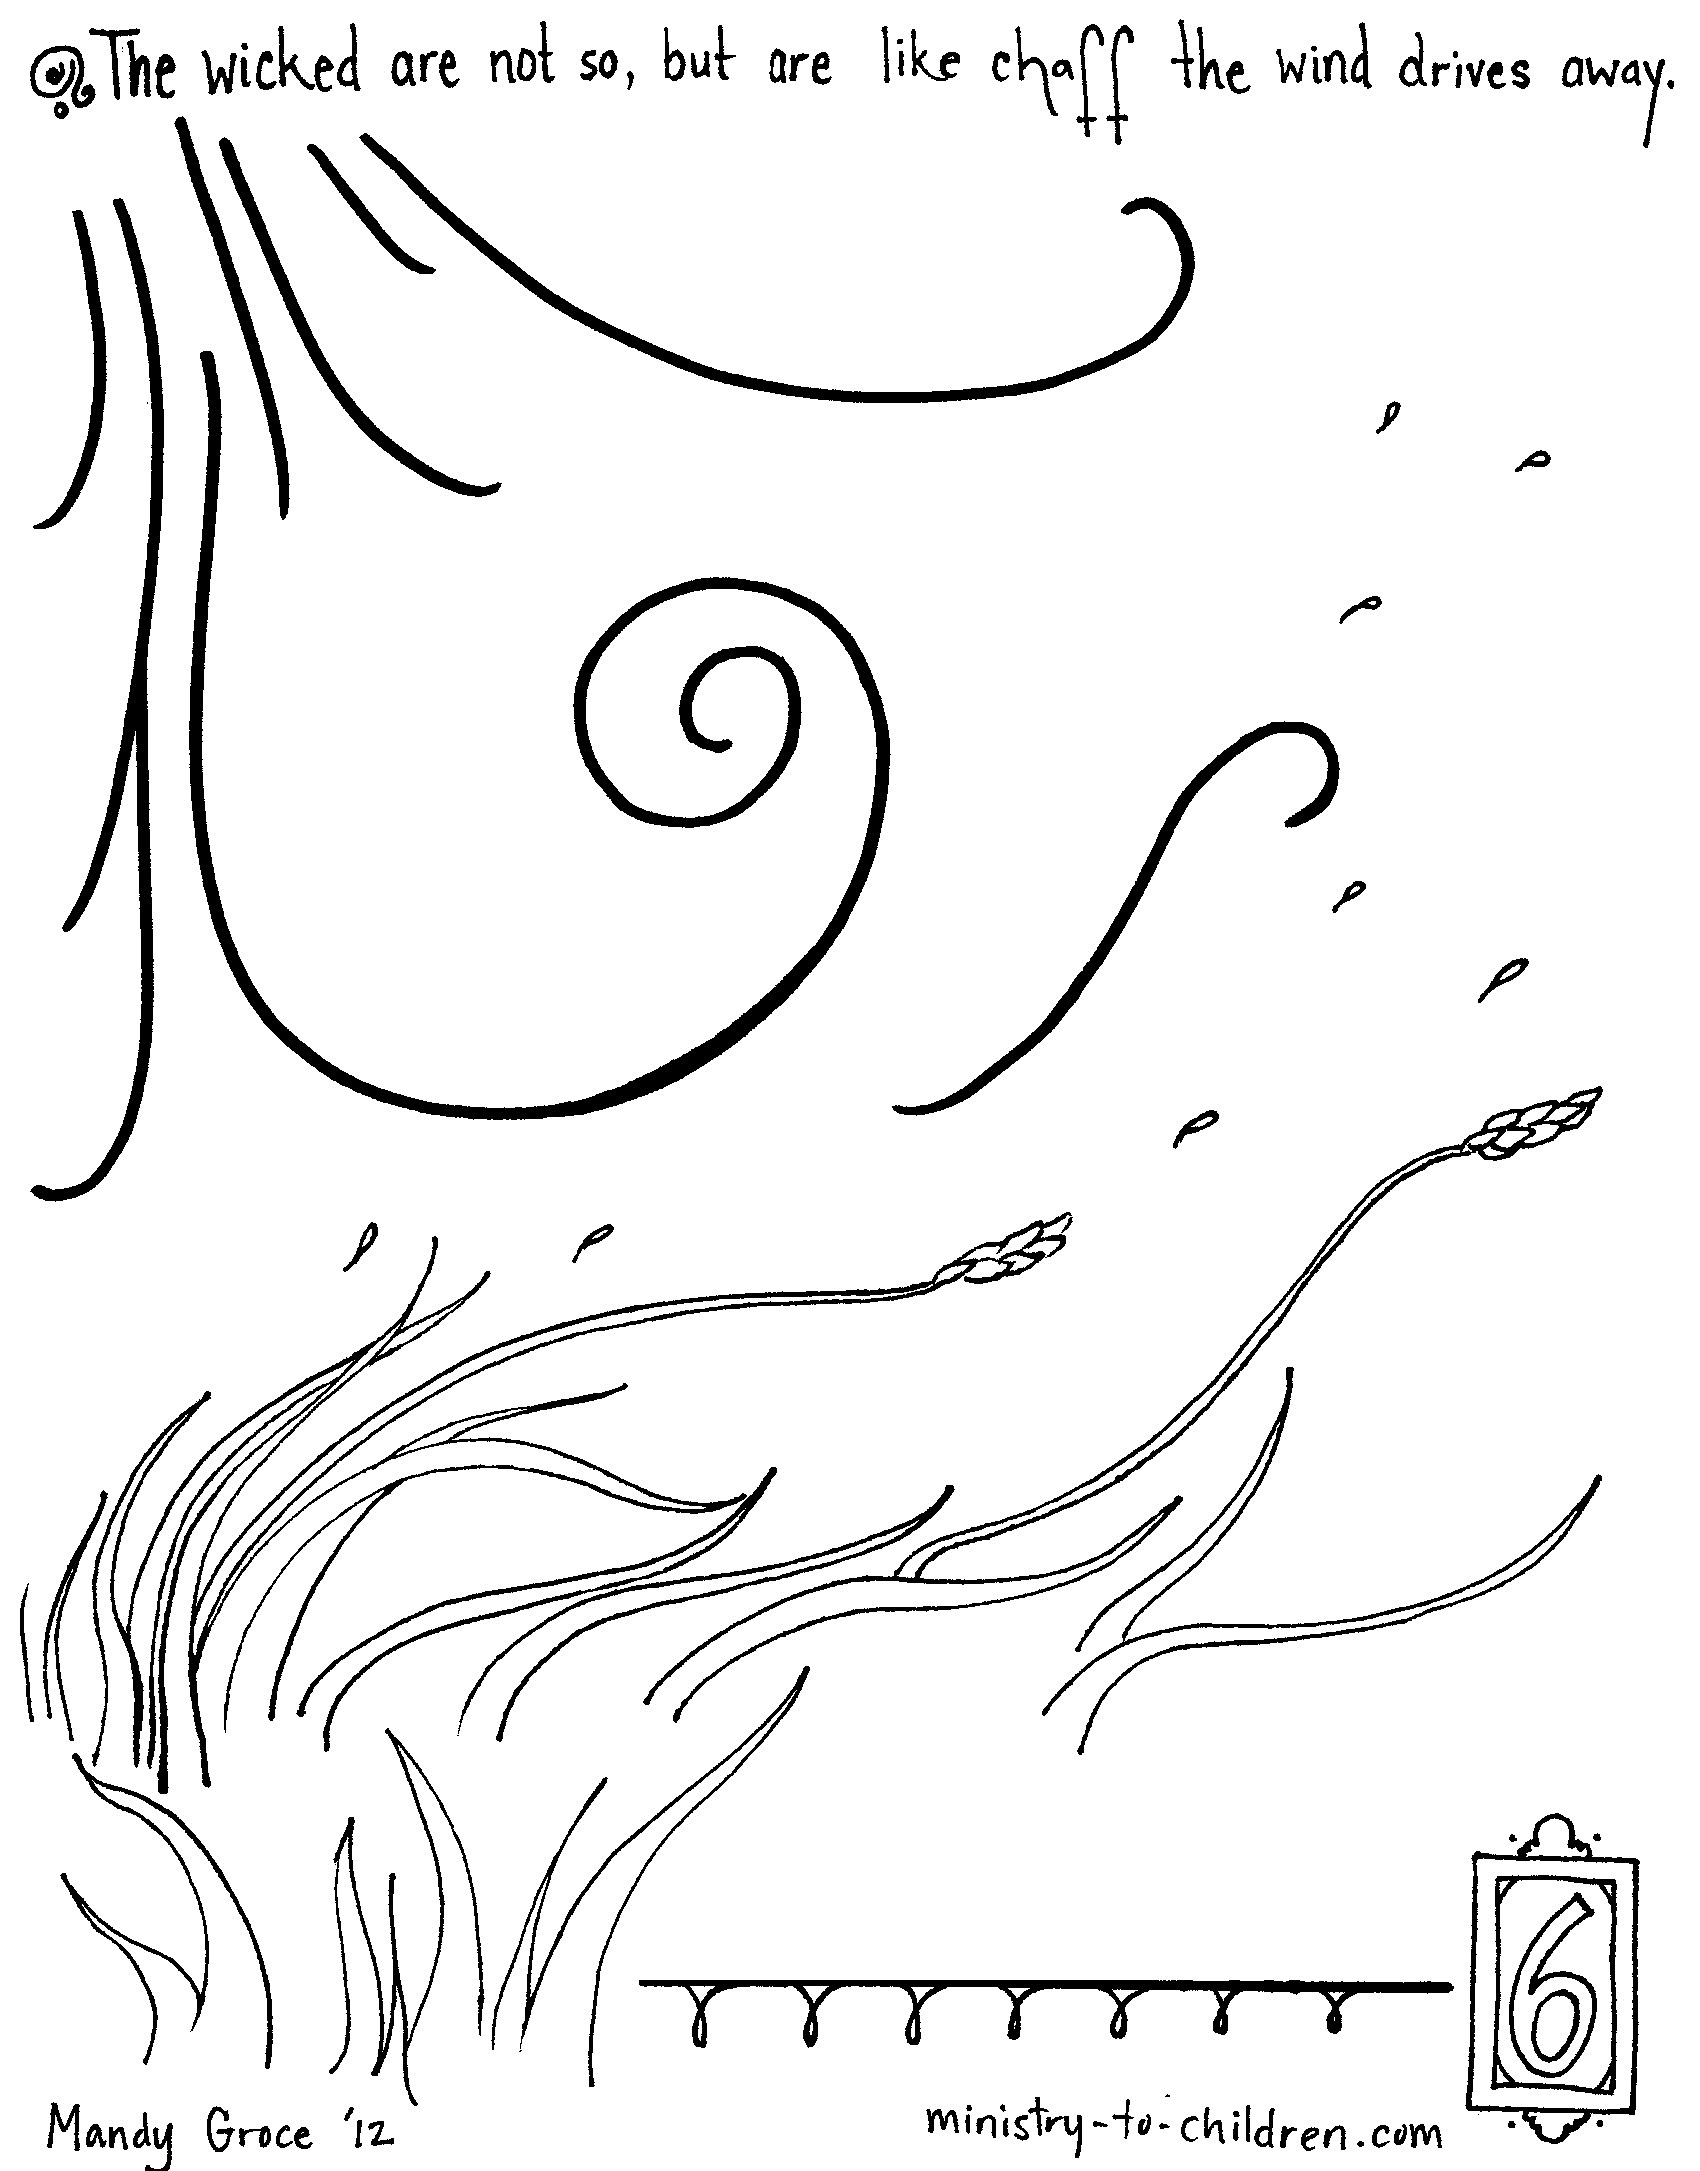 Wind coloring #16, Download drawings